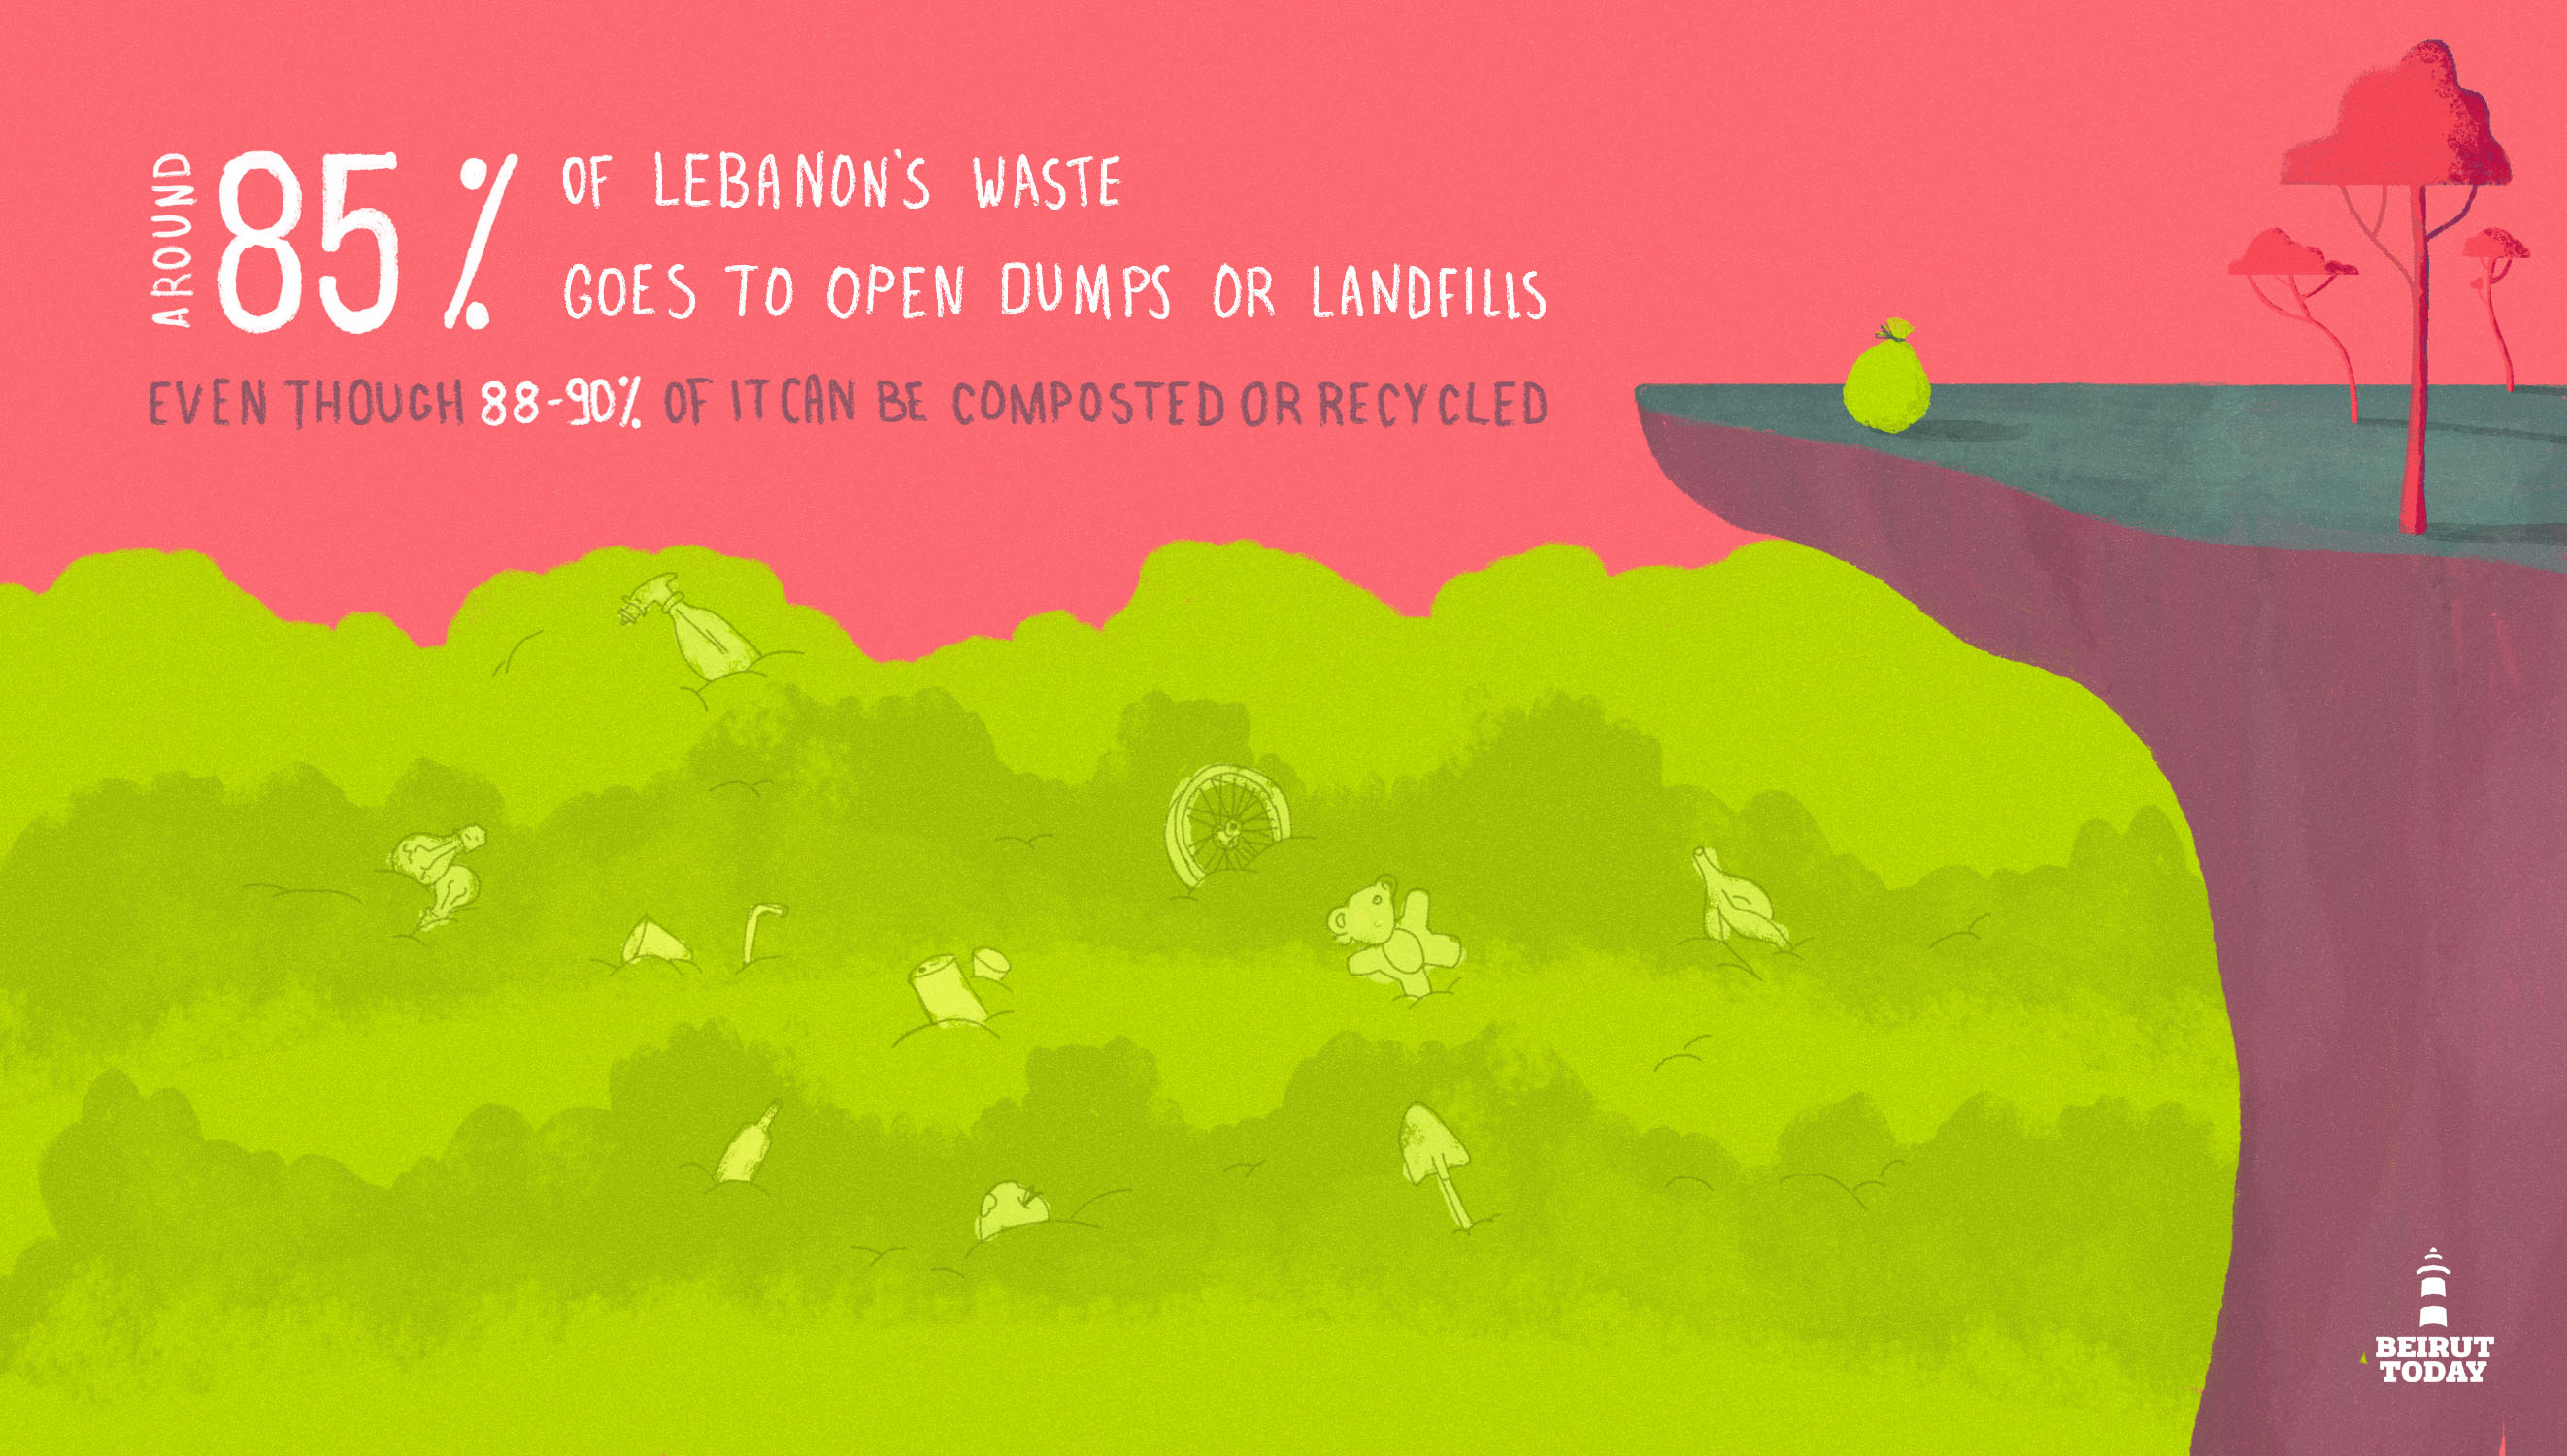 Garbage crisis: Around 85 percent of Lebanon's waste goes to open dumps or landfills, even though 88 to 90 percent of it can be composted or recycled. (Infographic by Christina Atik)